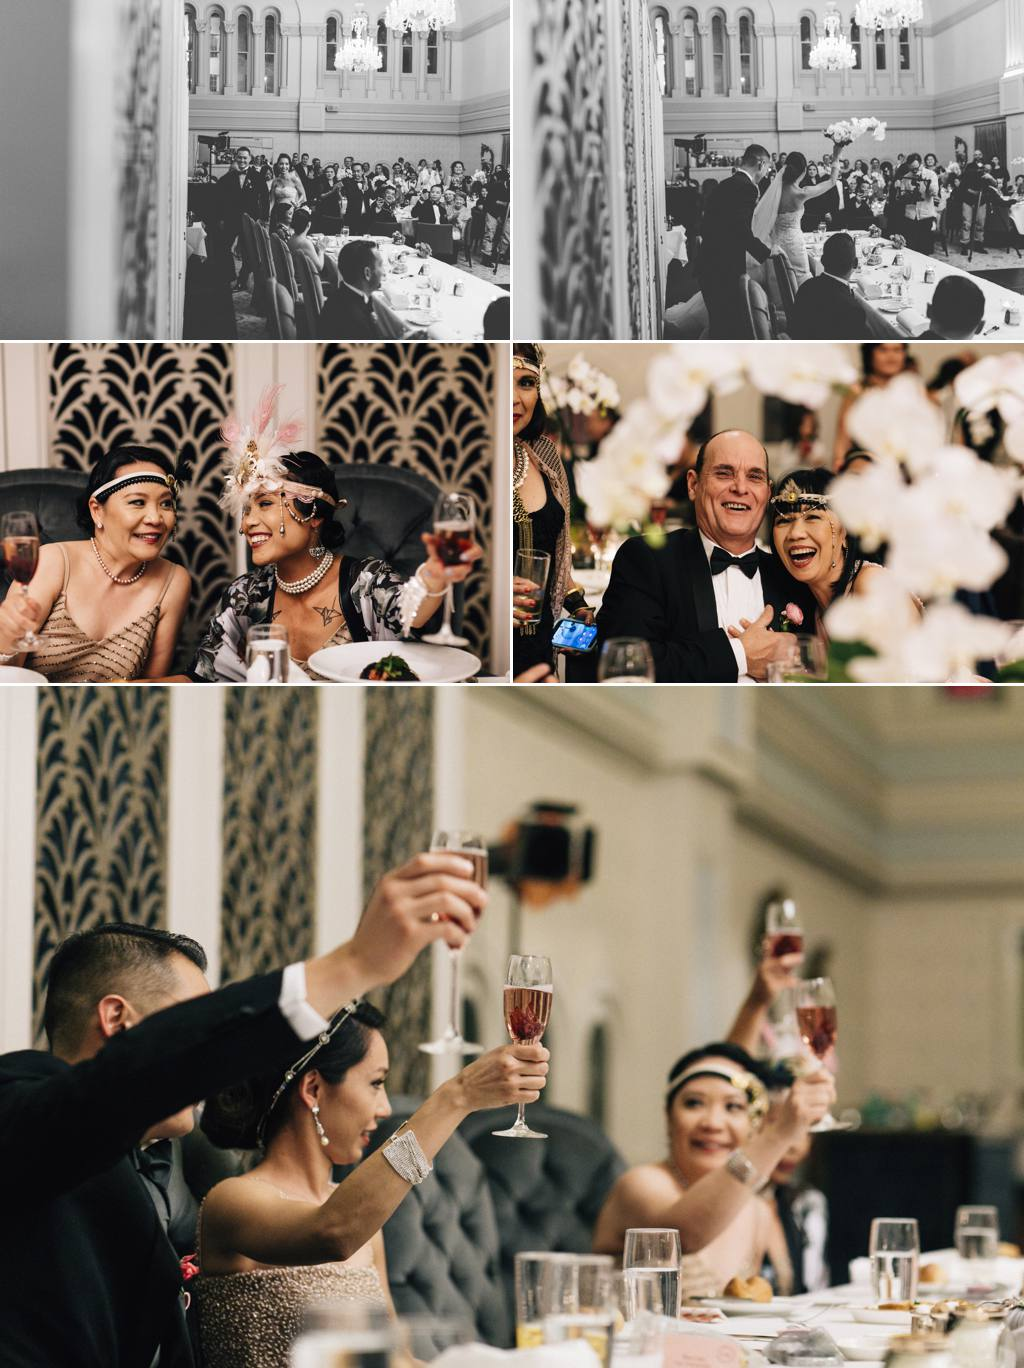 QVB tea rooms wedding reception Tea Rooms Queen Victoria Building Sydney Wedding Julia + Ken